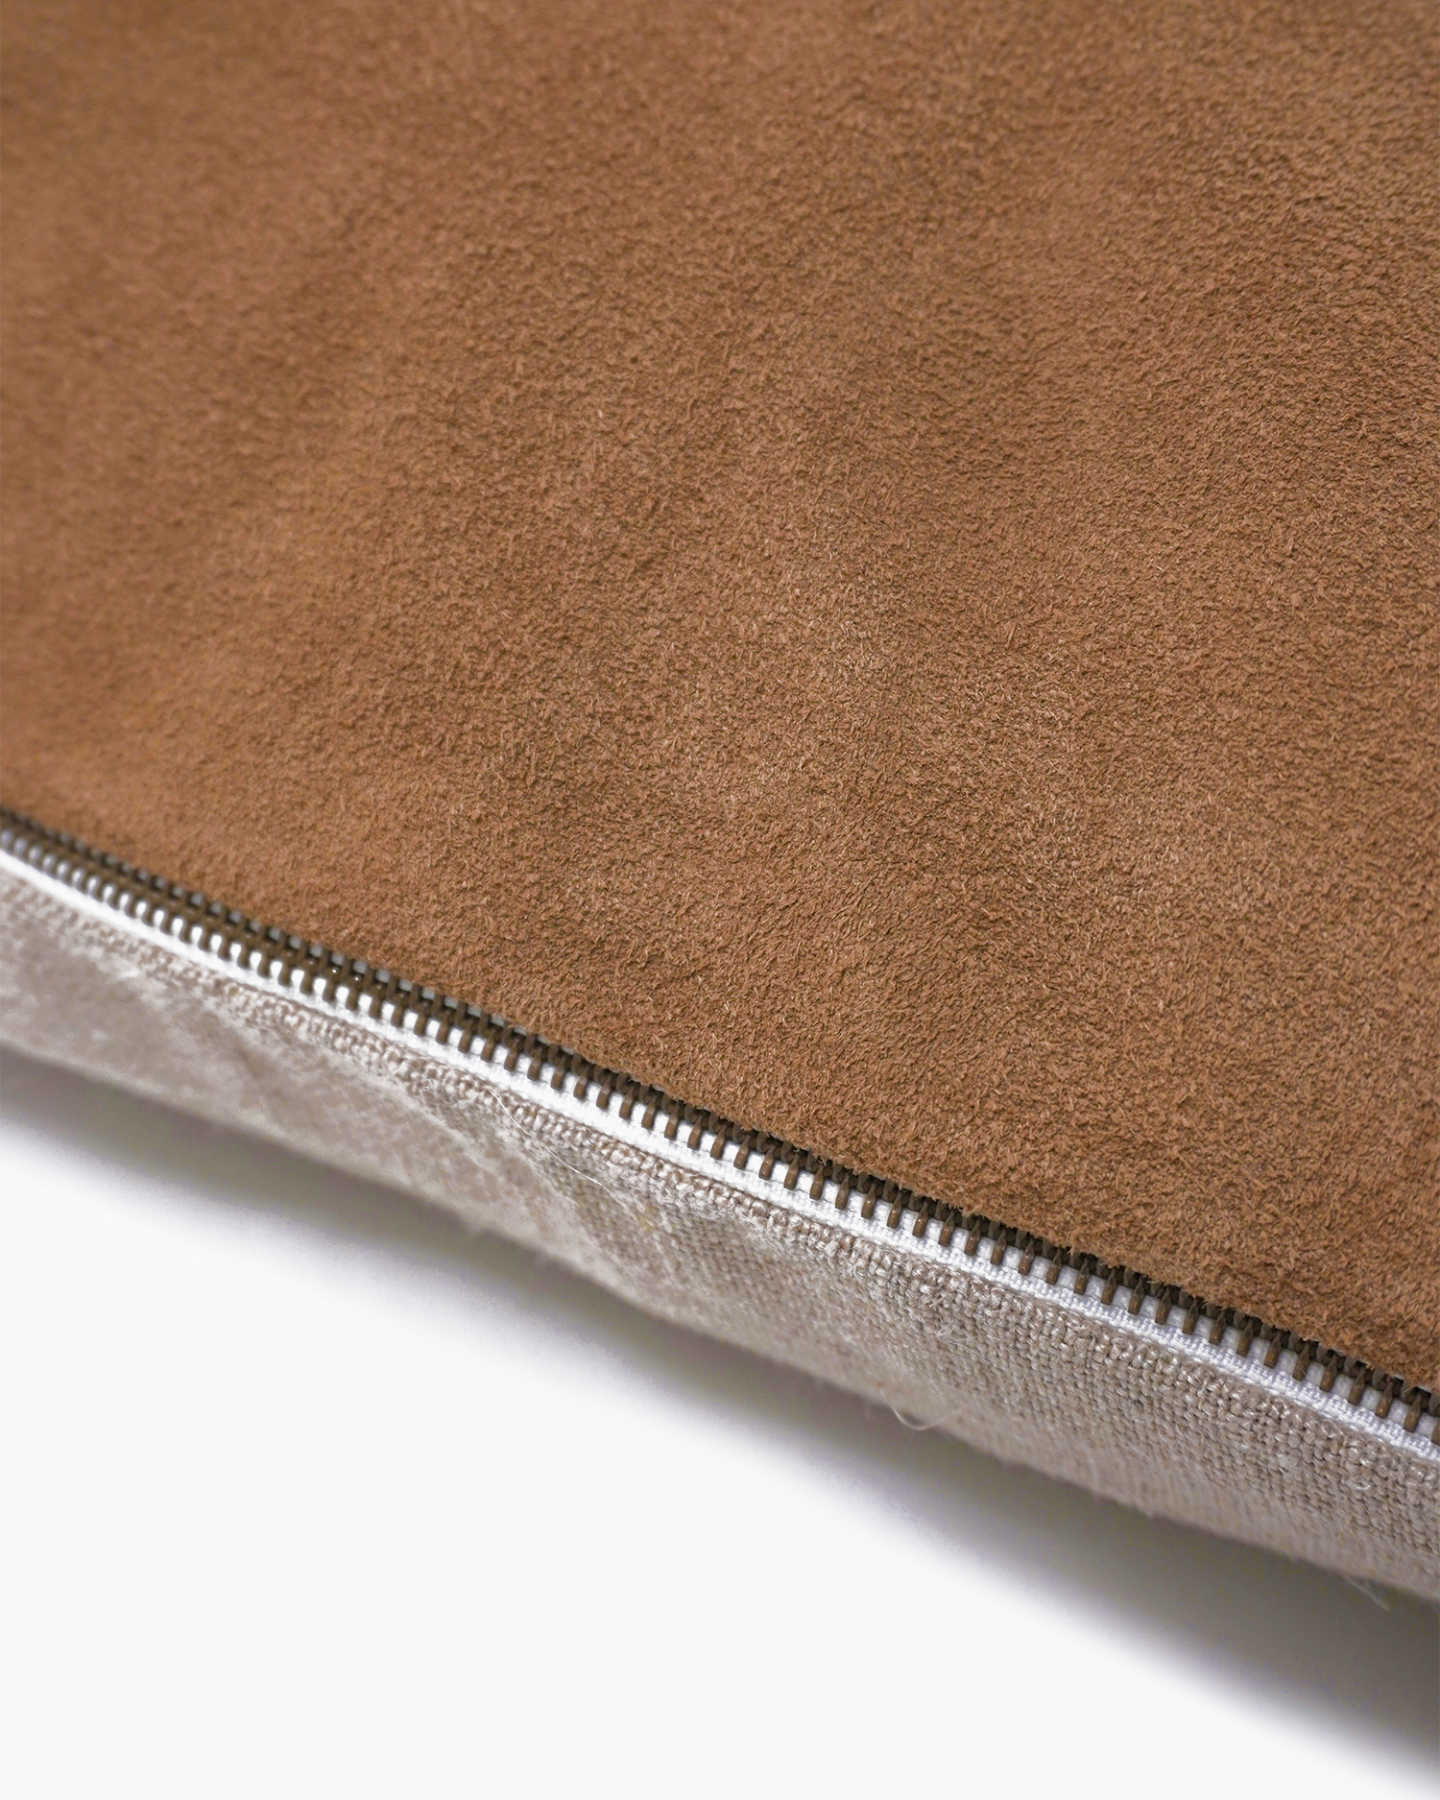 Premium Suede Pillow Cover - Camel - 1